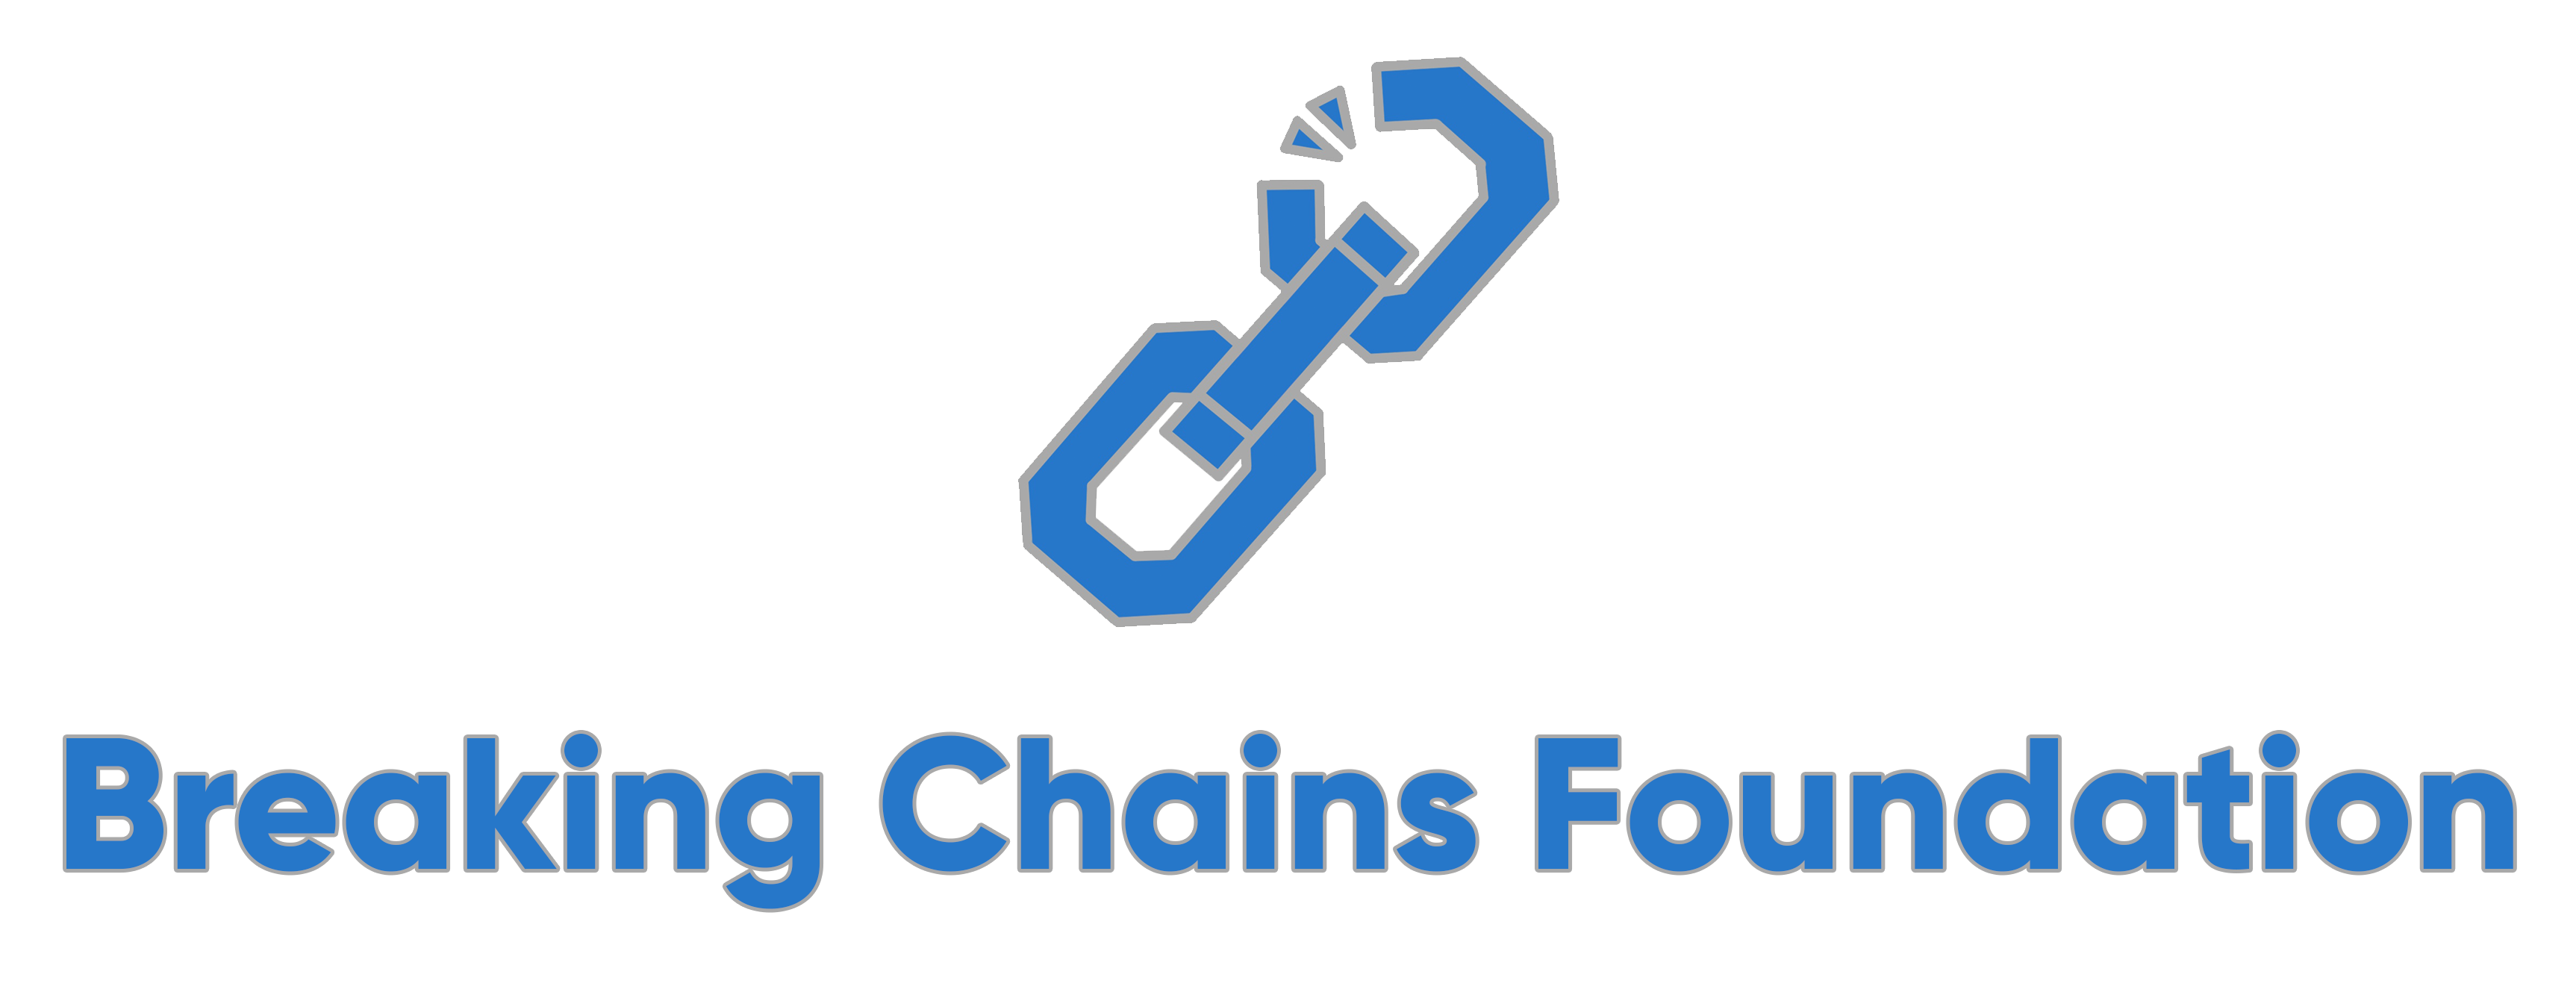 Breaking Chains Foundation